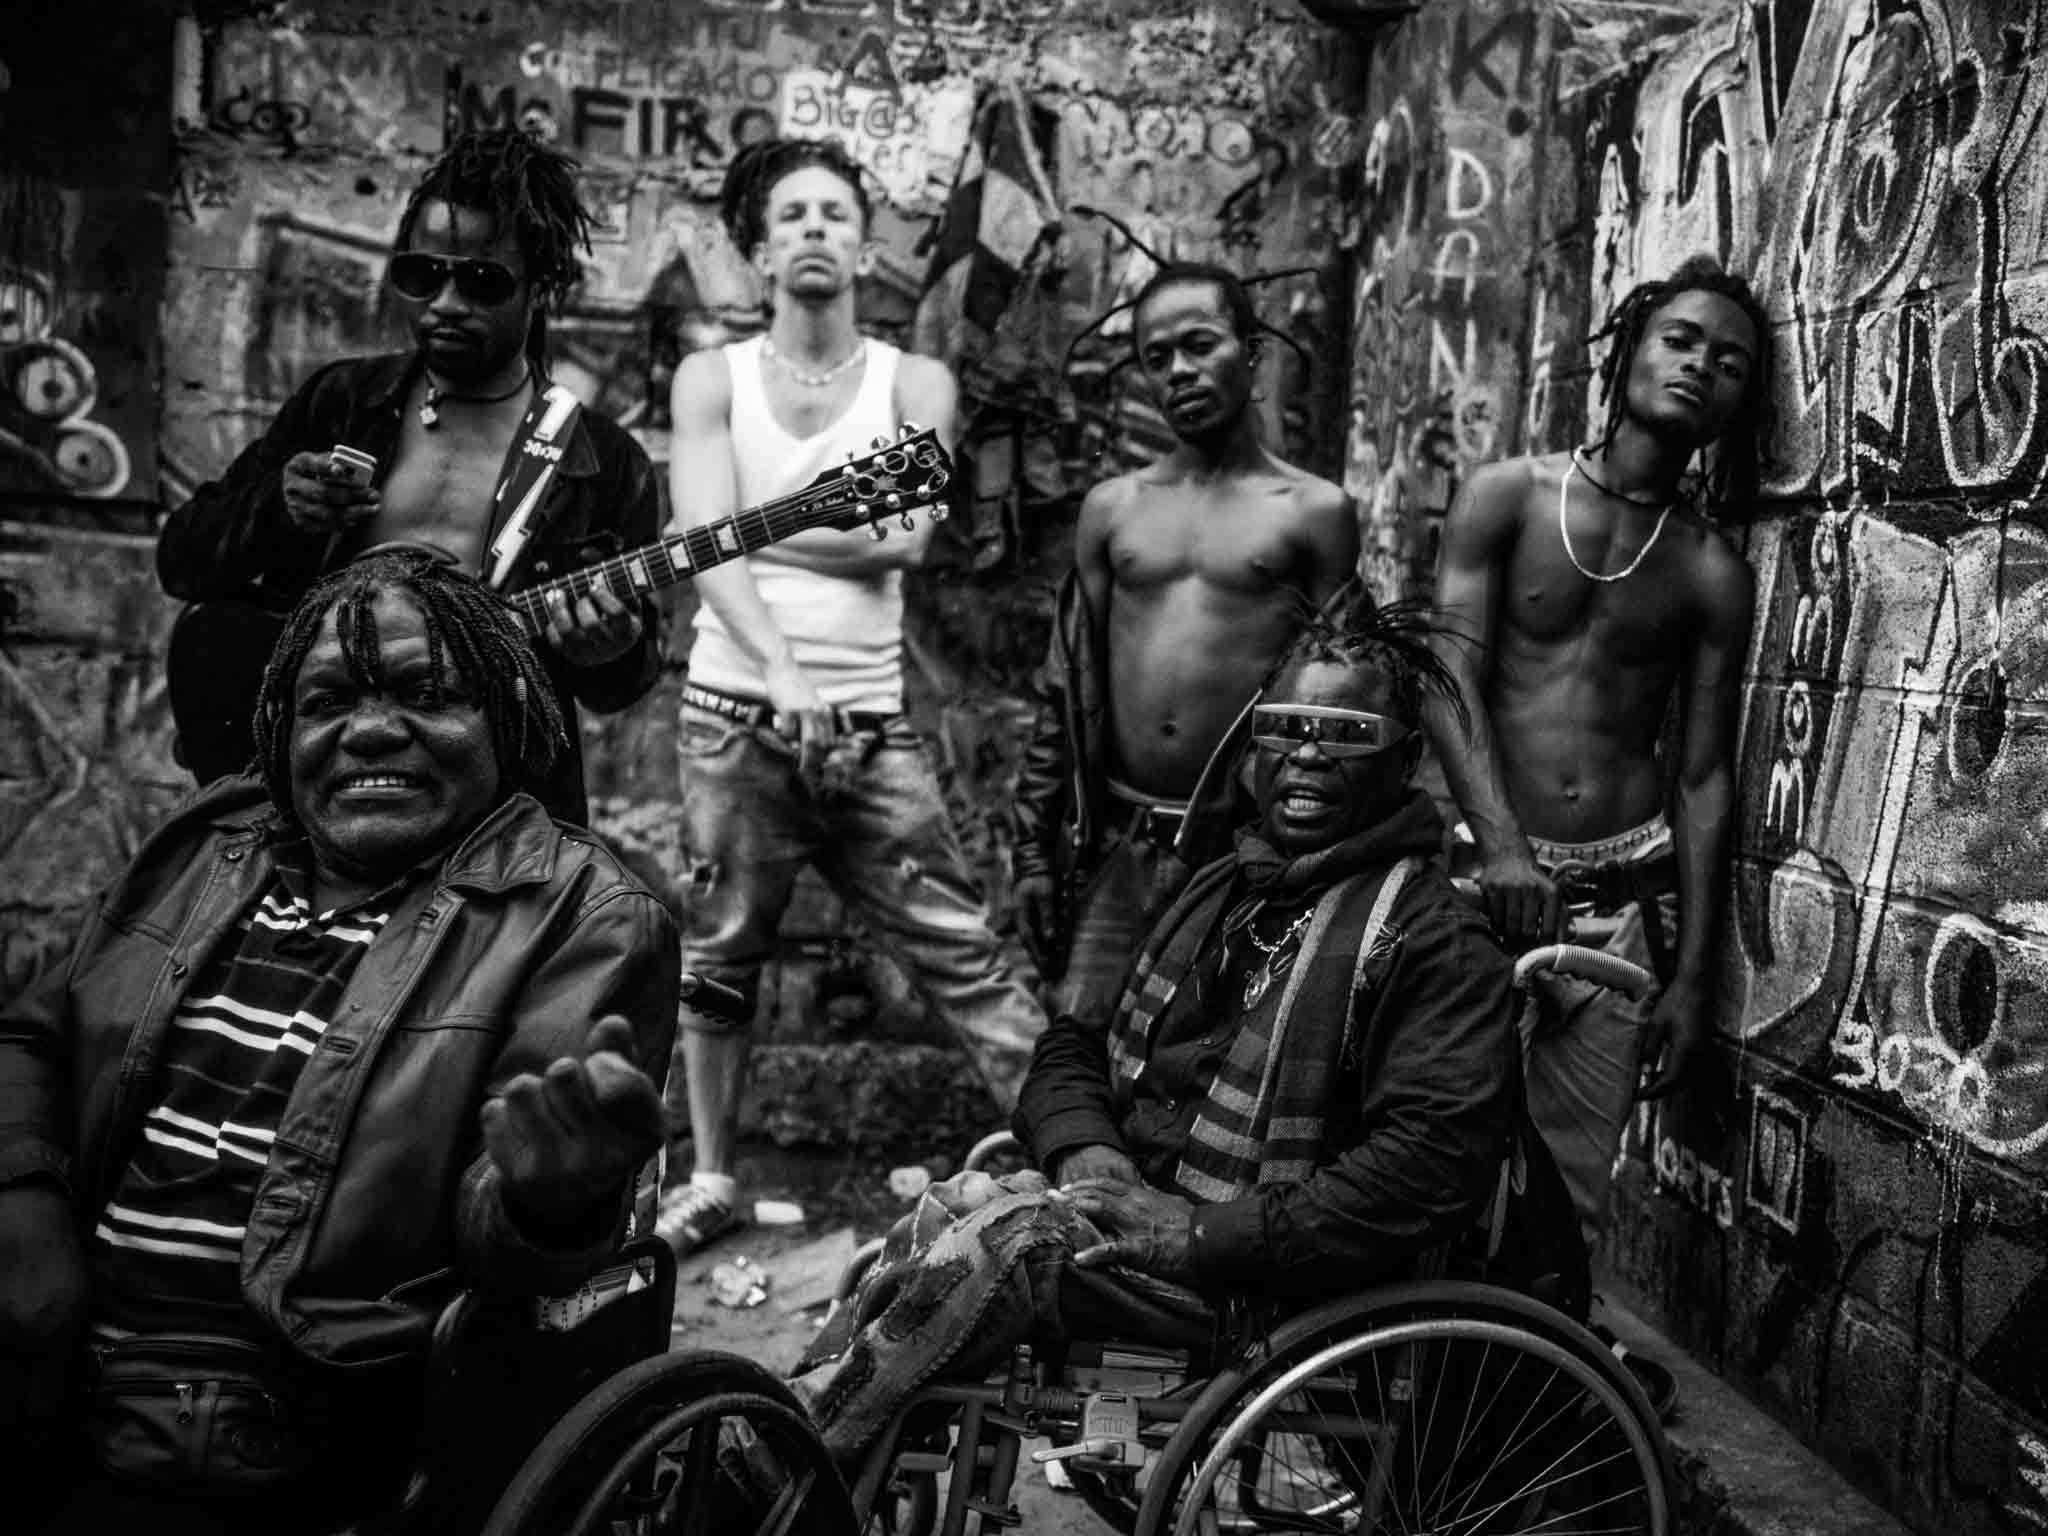 The 50 best albums of 2015 - Mbongwana Star - 'From Kinshasa'